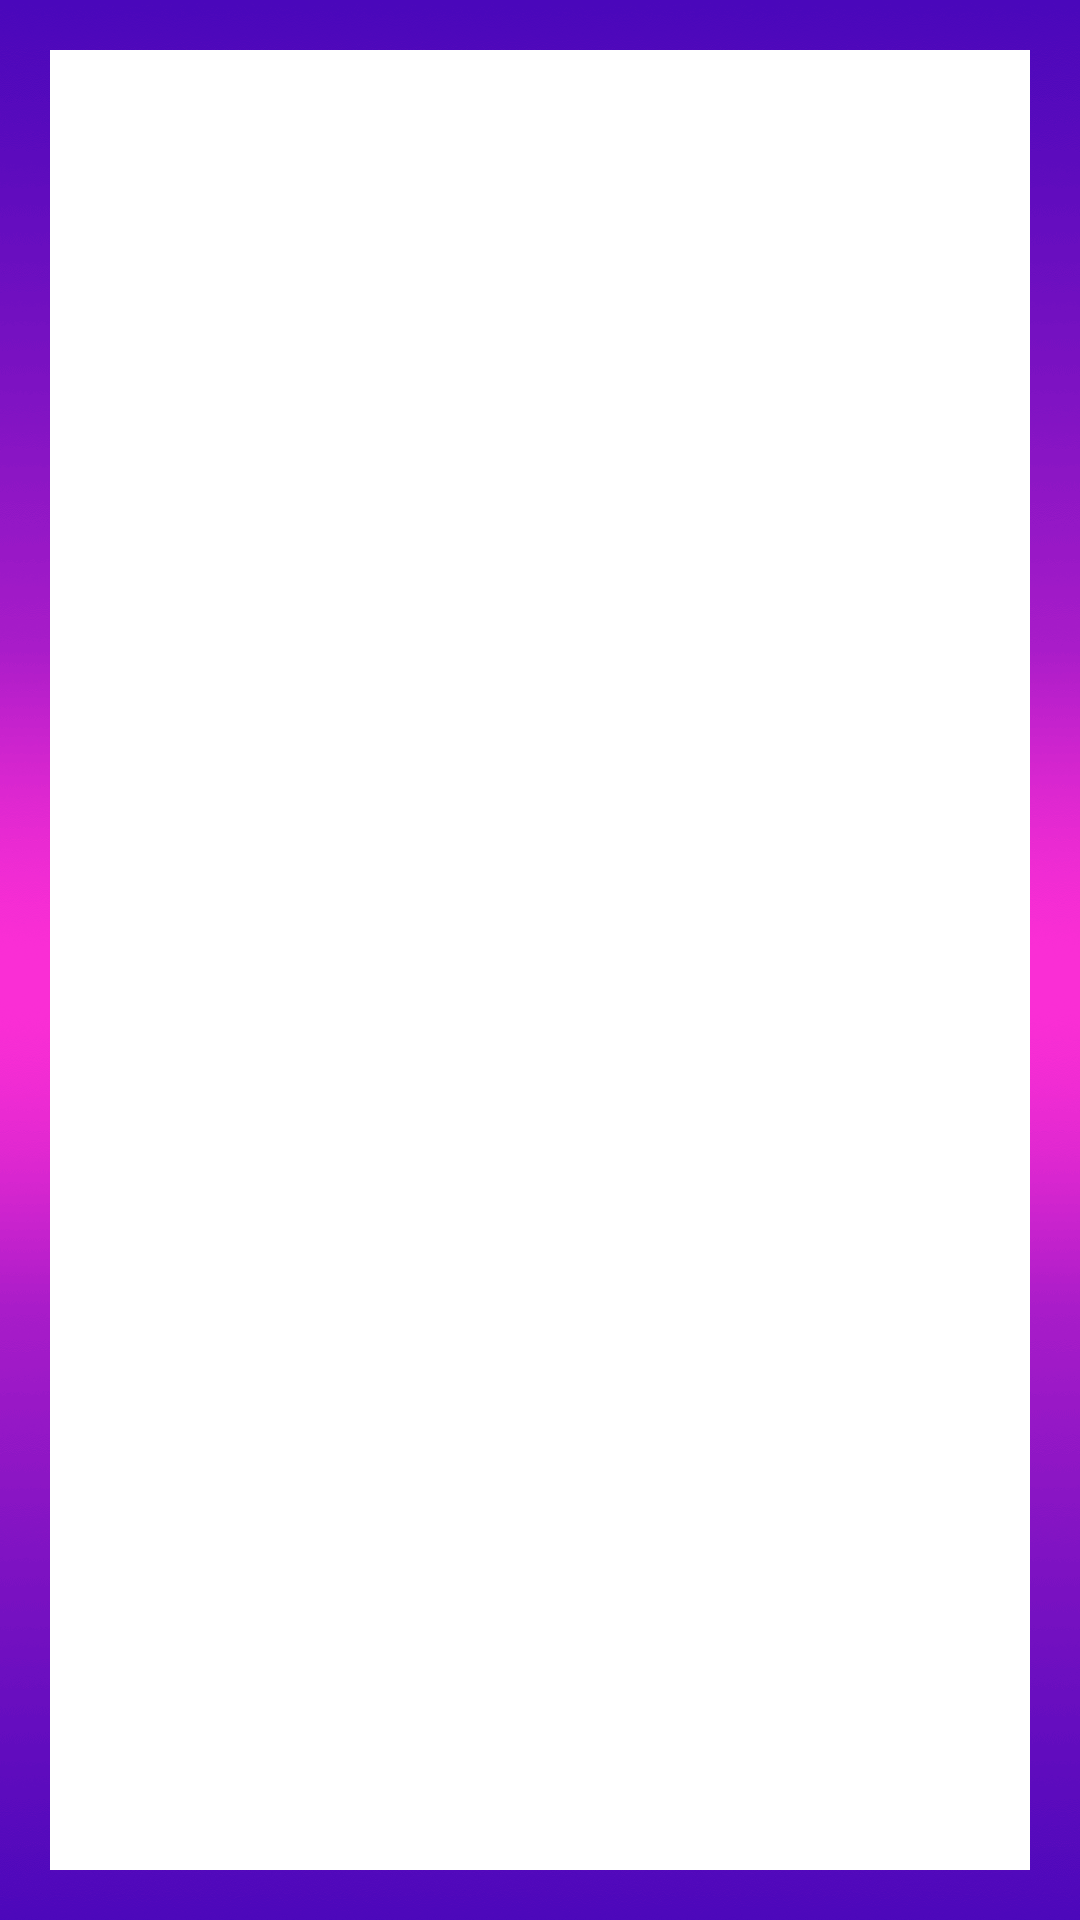 vector royalty free transparent filters purple #105746631